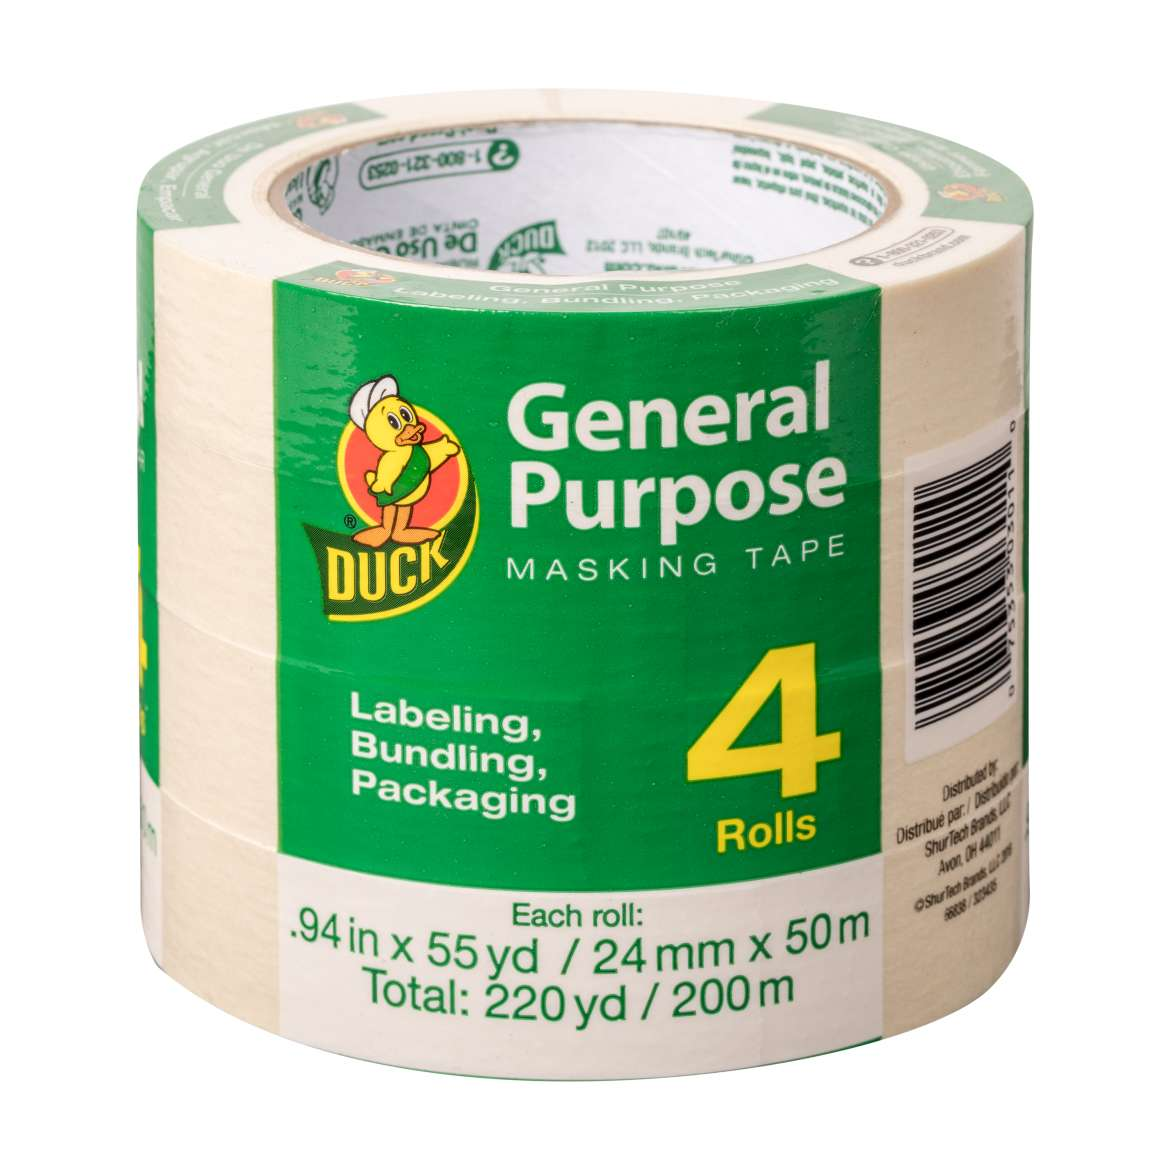 General Purpose Masking Tape Image